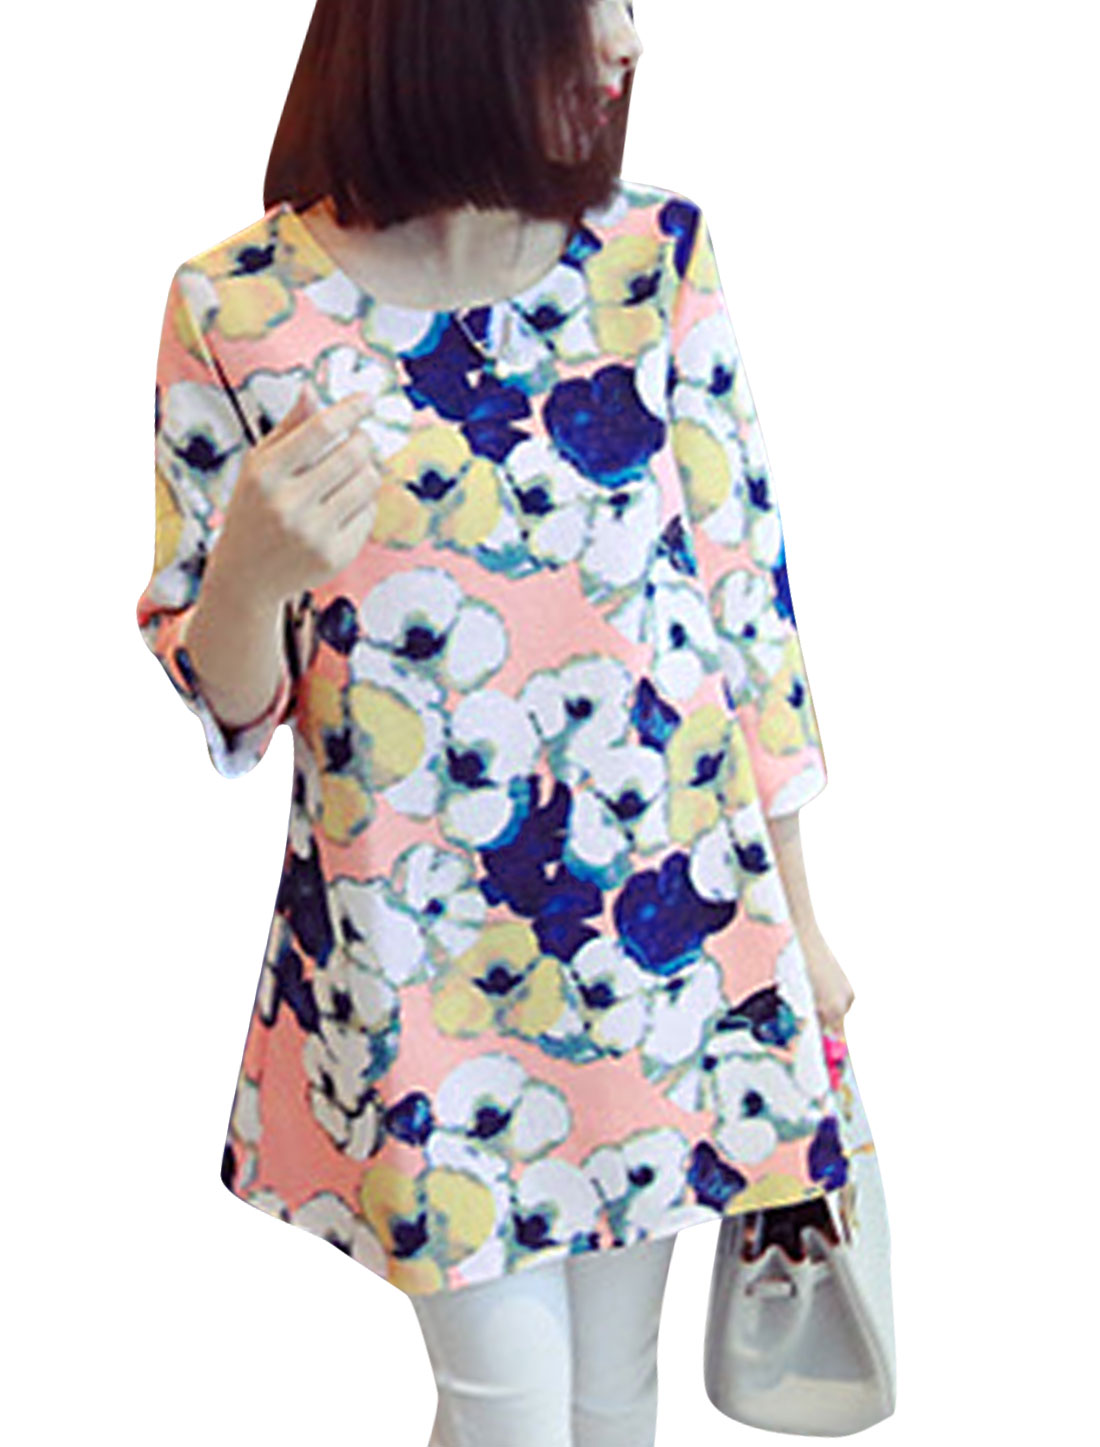 Lady Round Neck 3/4 Sleeve Floral Prints Tunic Top Light Pink Multi Color XS